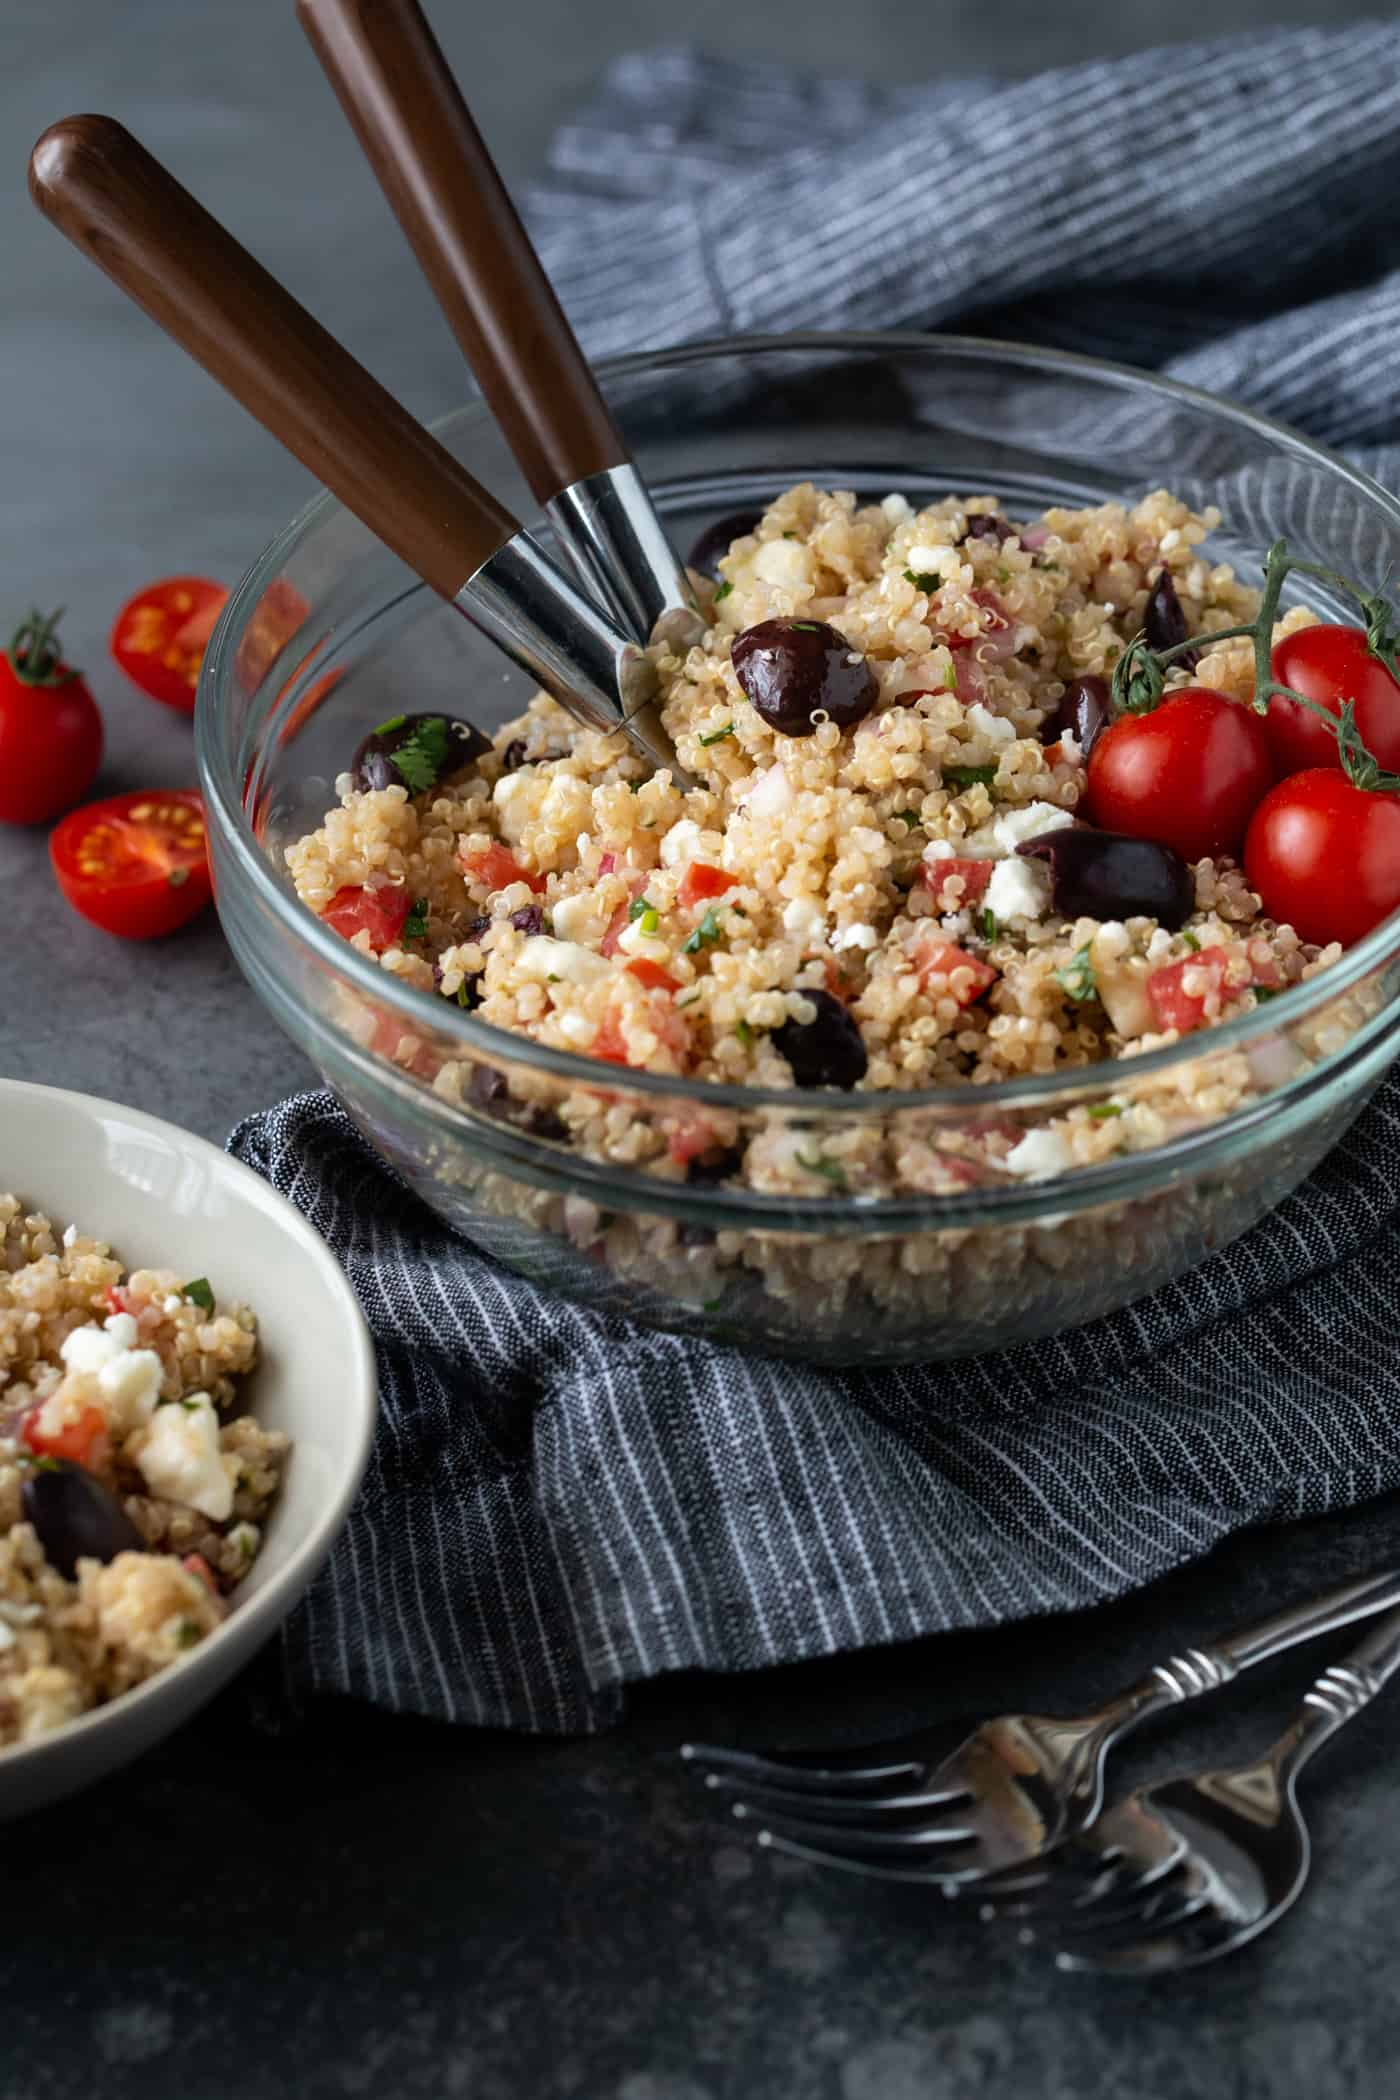 Mediterranean Quinoa Salad in a glass bowl on a dark background garnished with sliced grape tomatoes.